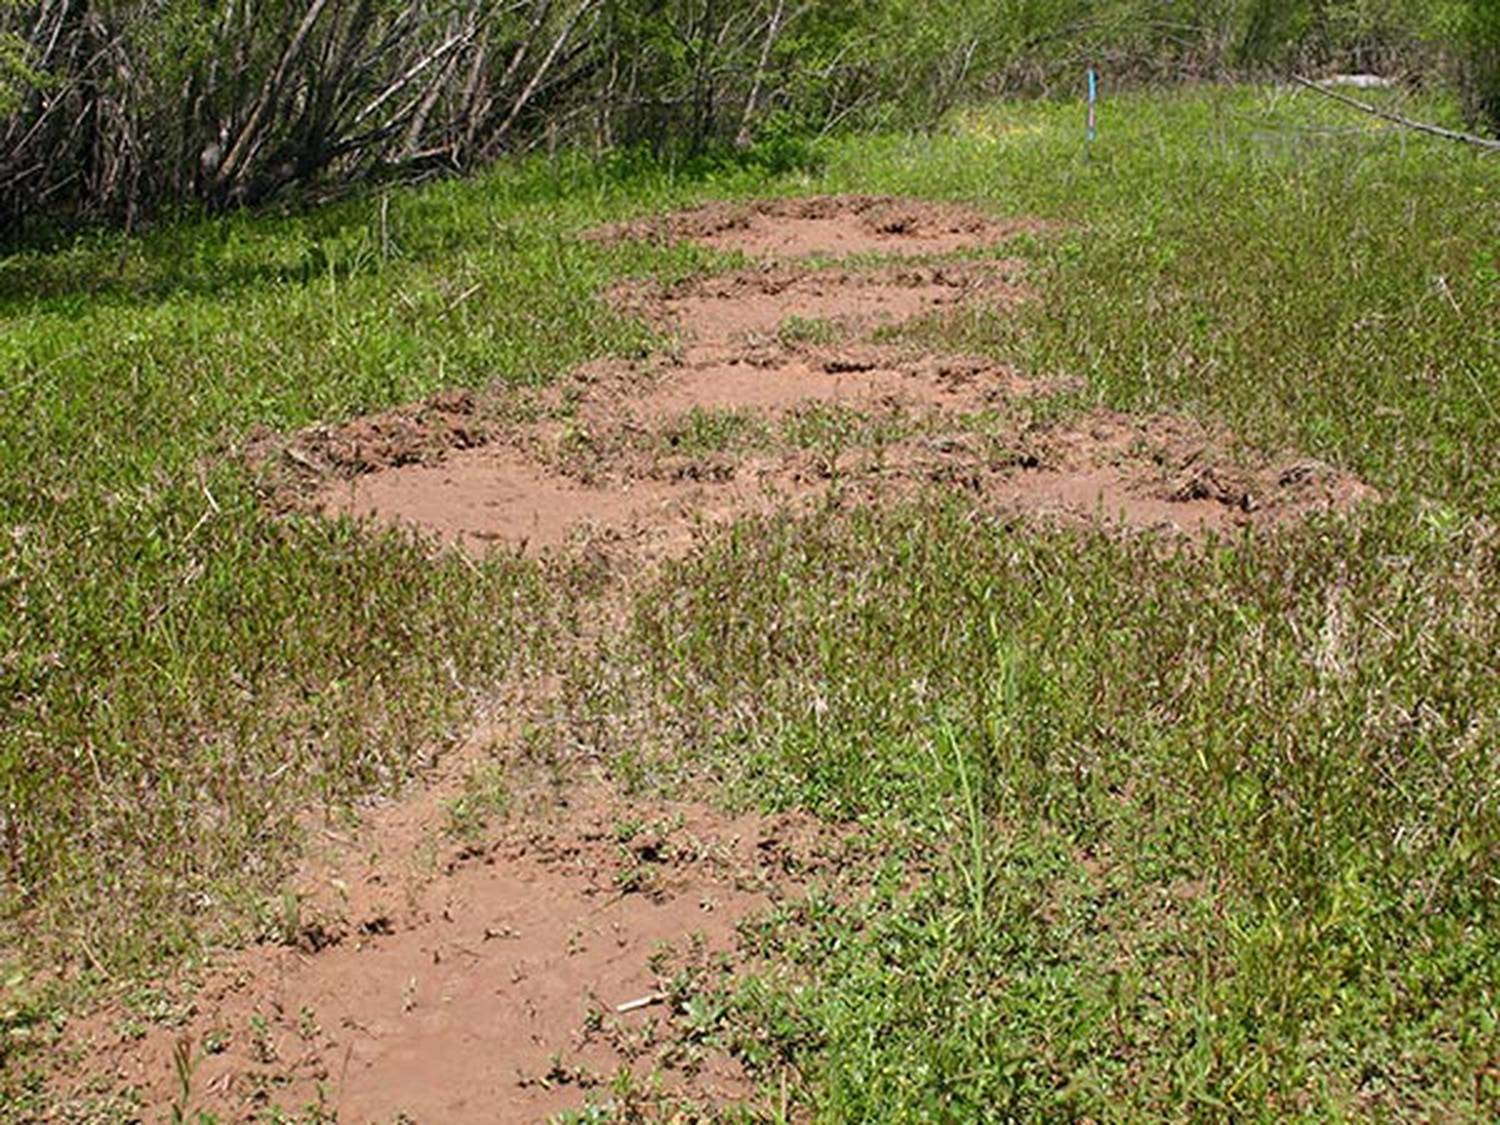 Feral pigs leave behind trails of destruction, making them a bane to farmers, ranchers and environmentalists alike.